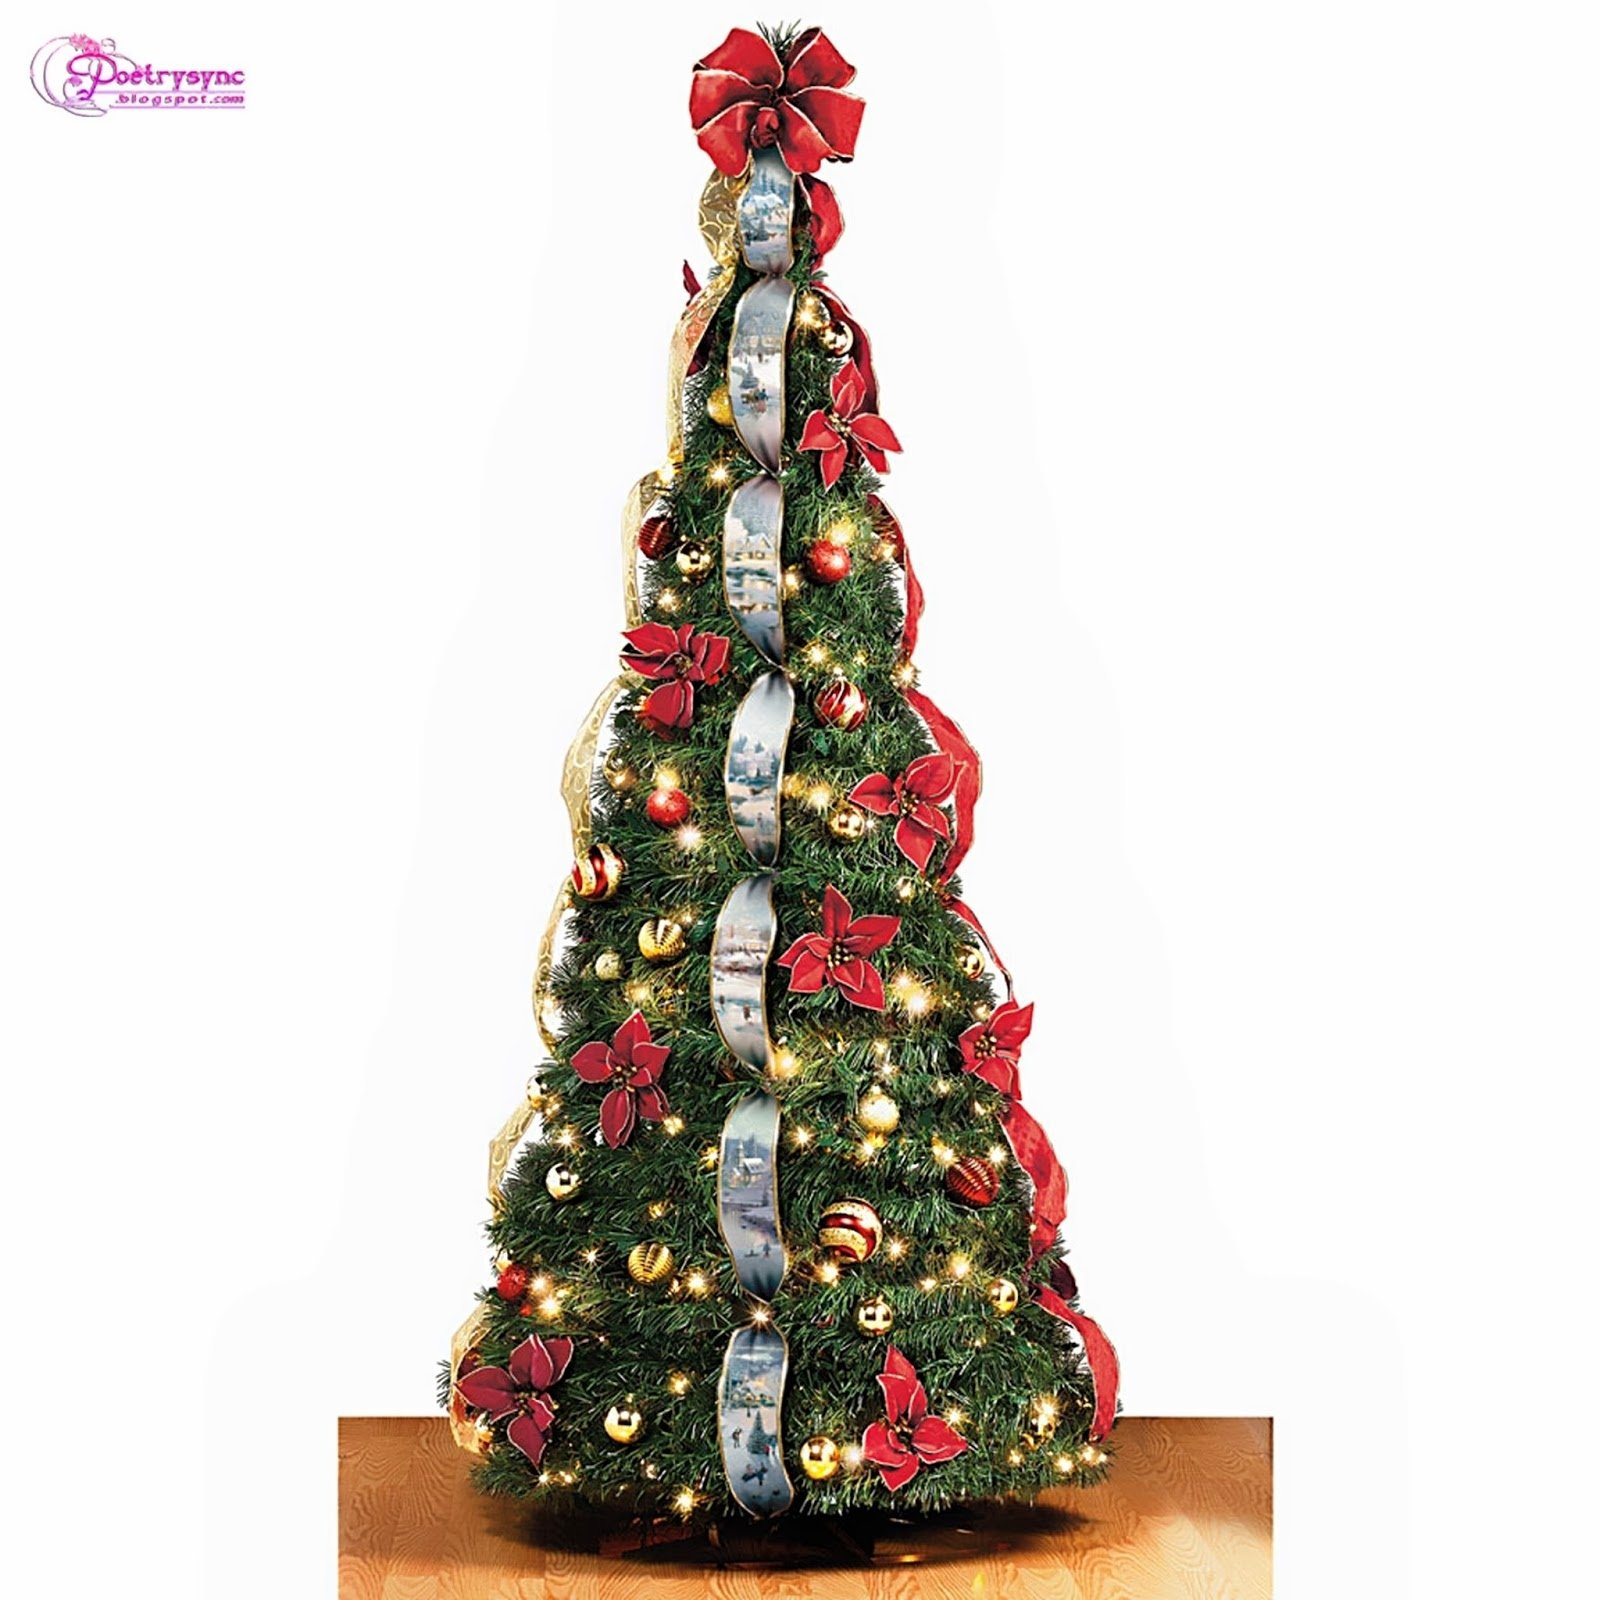 10 Spectacular Christmas Tree Decorating Ideas With Ribbon top 60 christmas tree decorating and present ideas pictures 26 on 2021